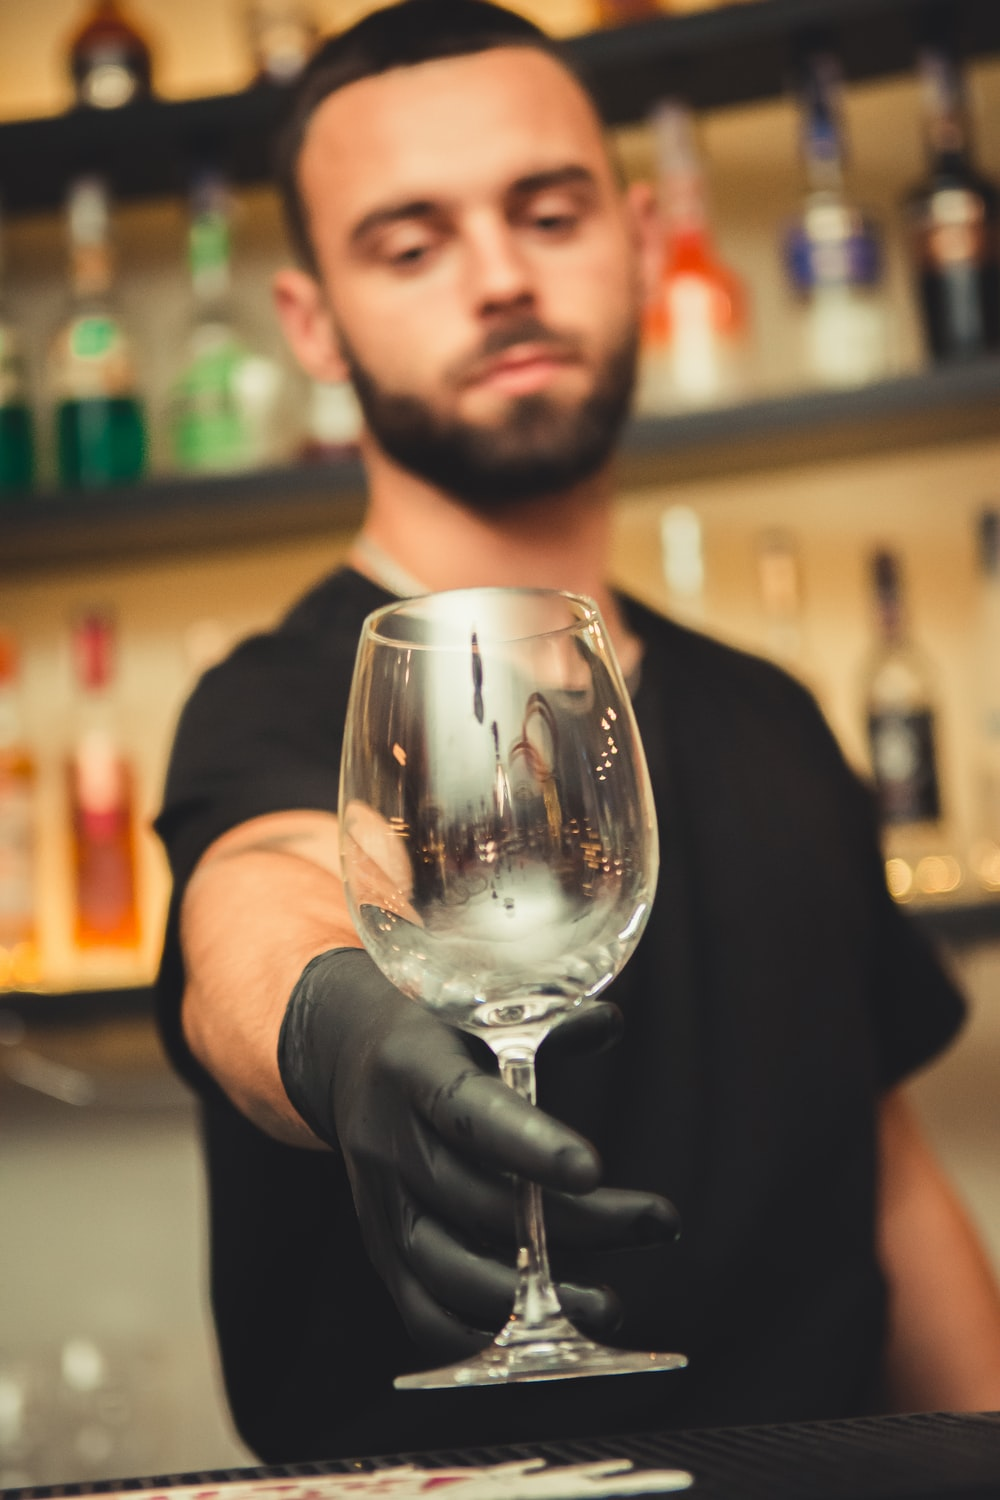 man holding empty clear glass wine goblet